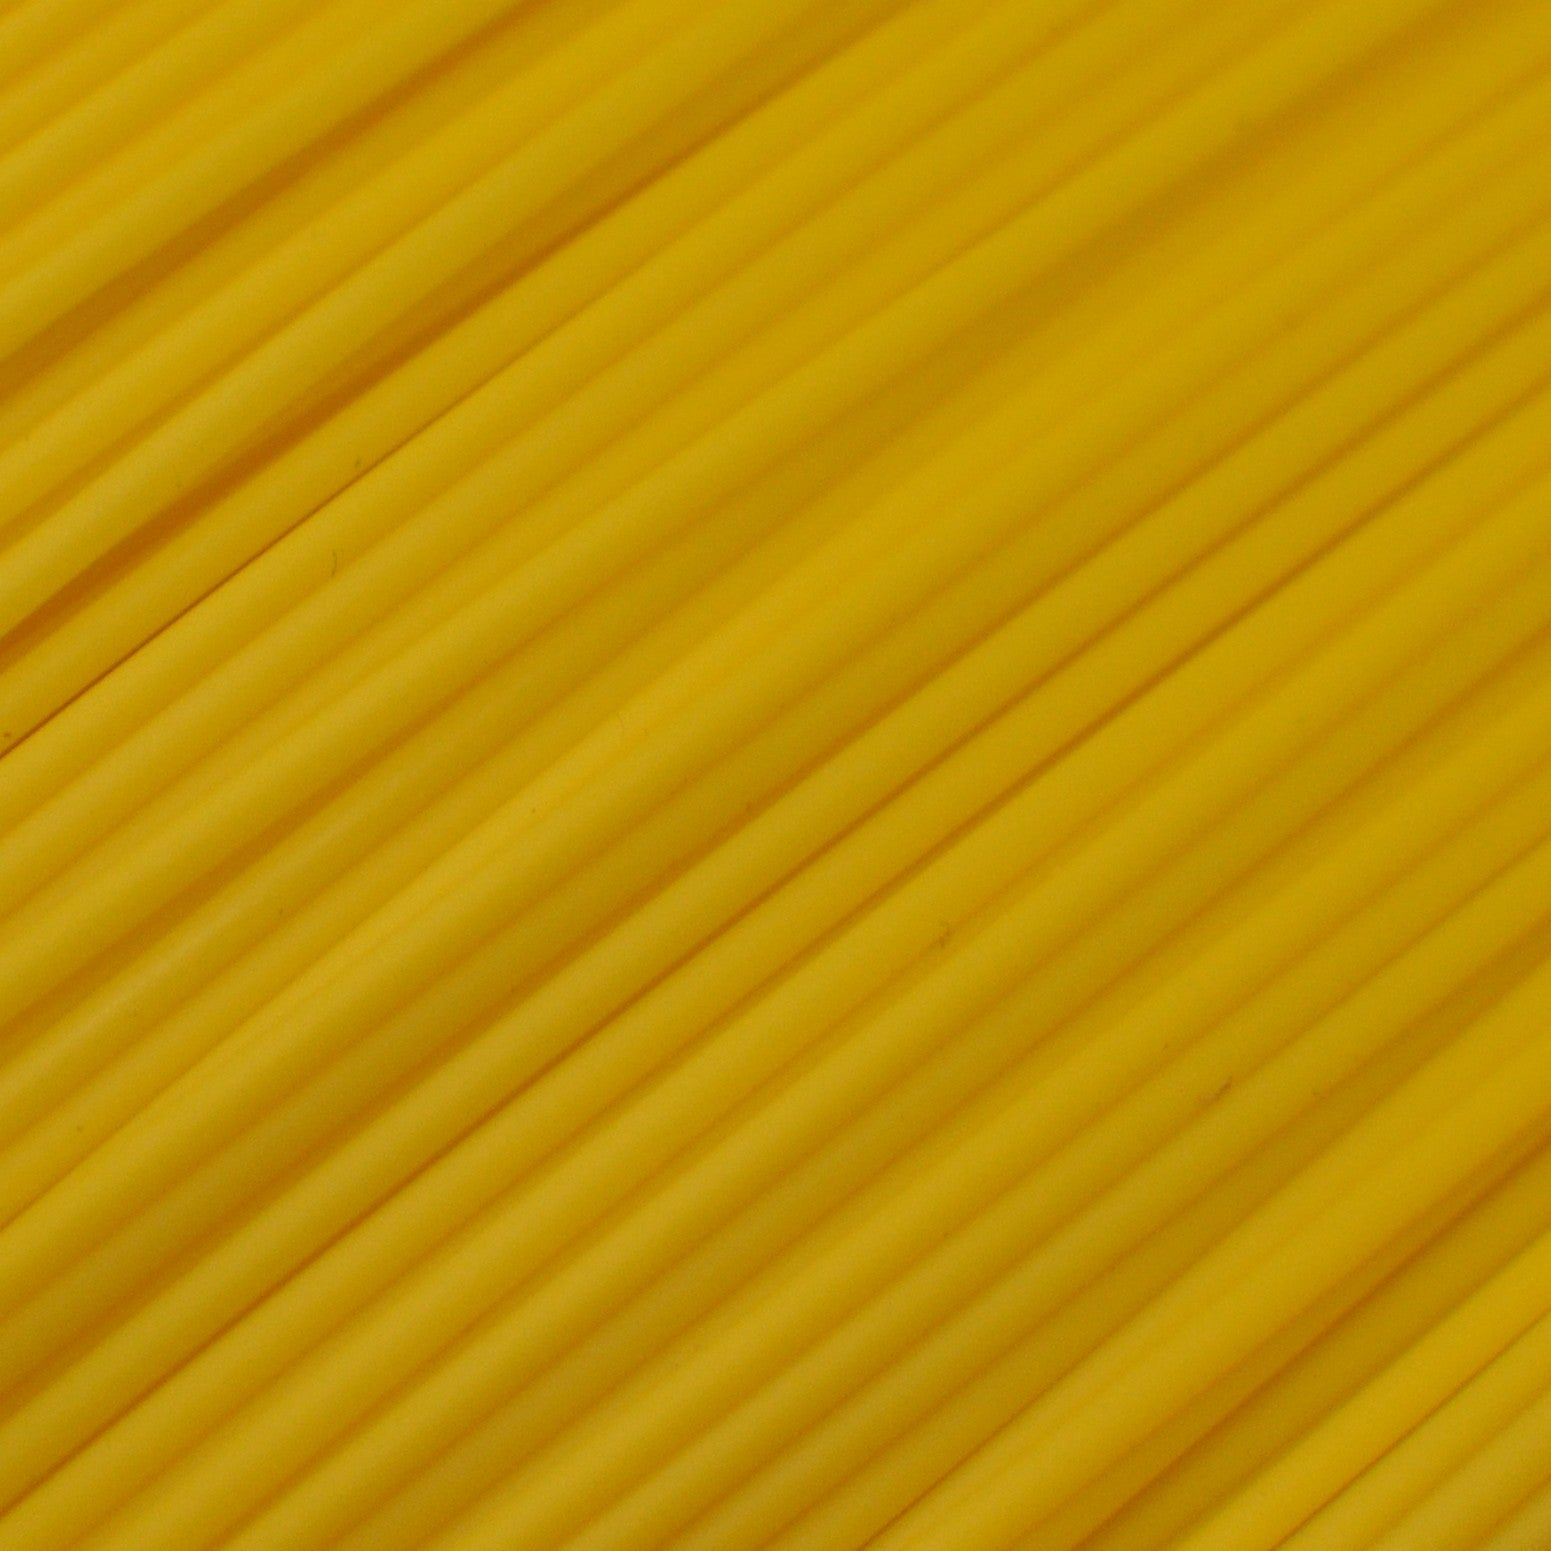 ABS 1.75mm - Yellow